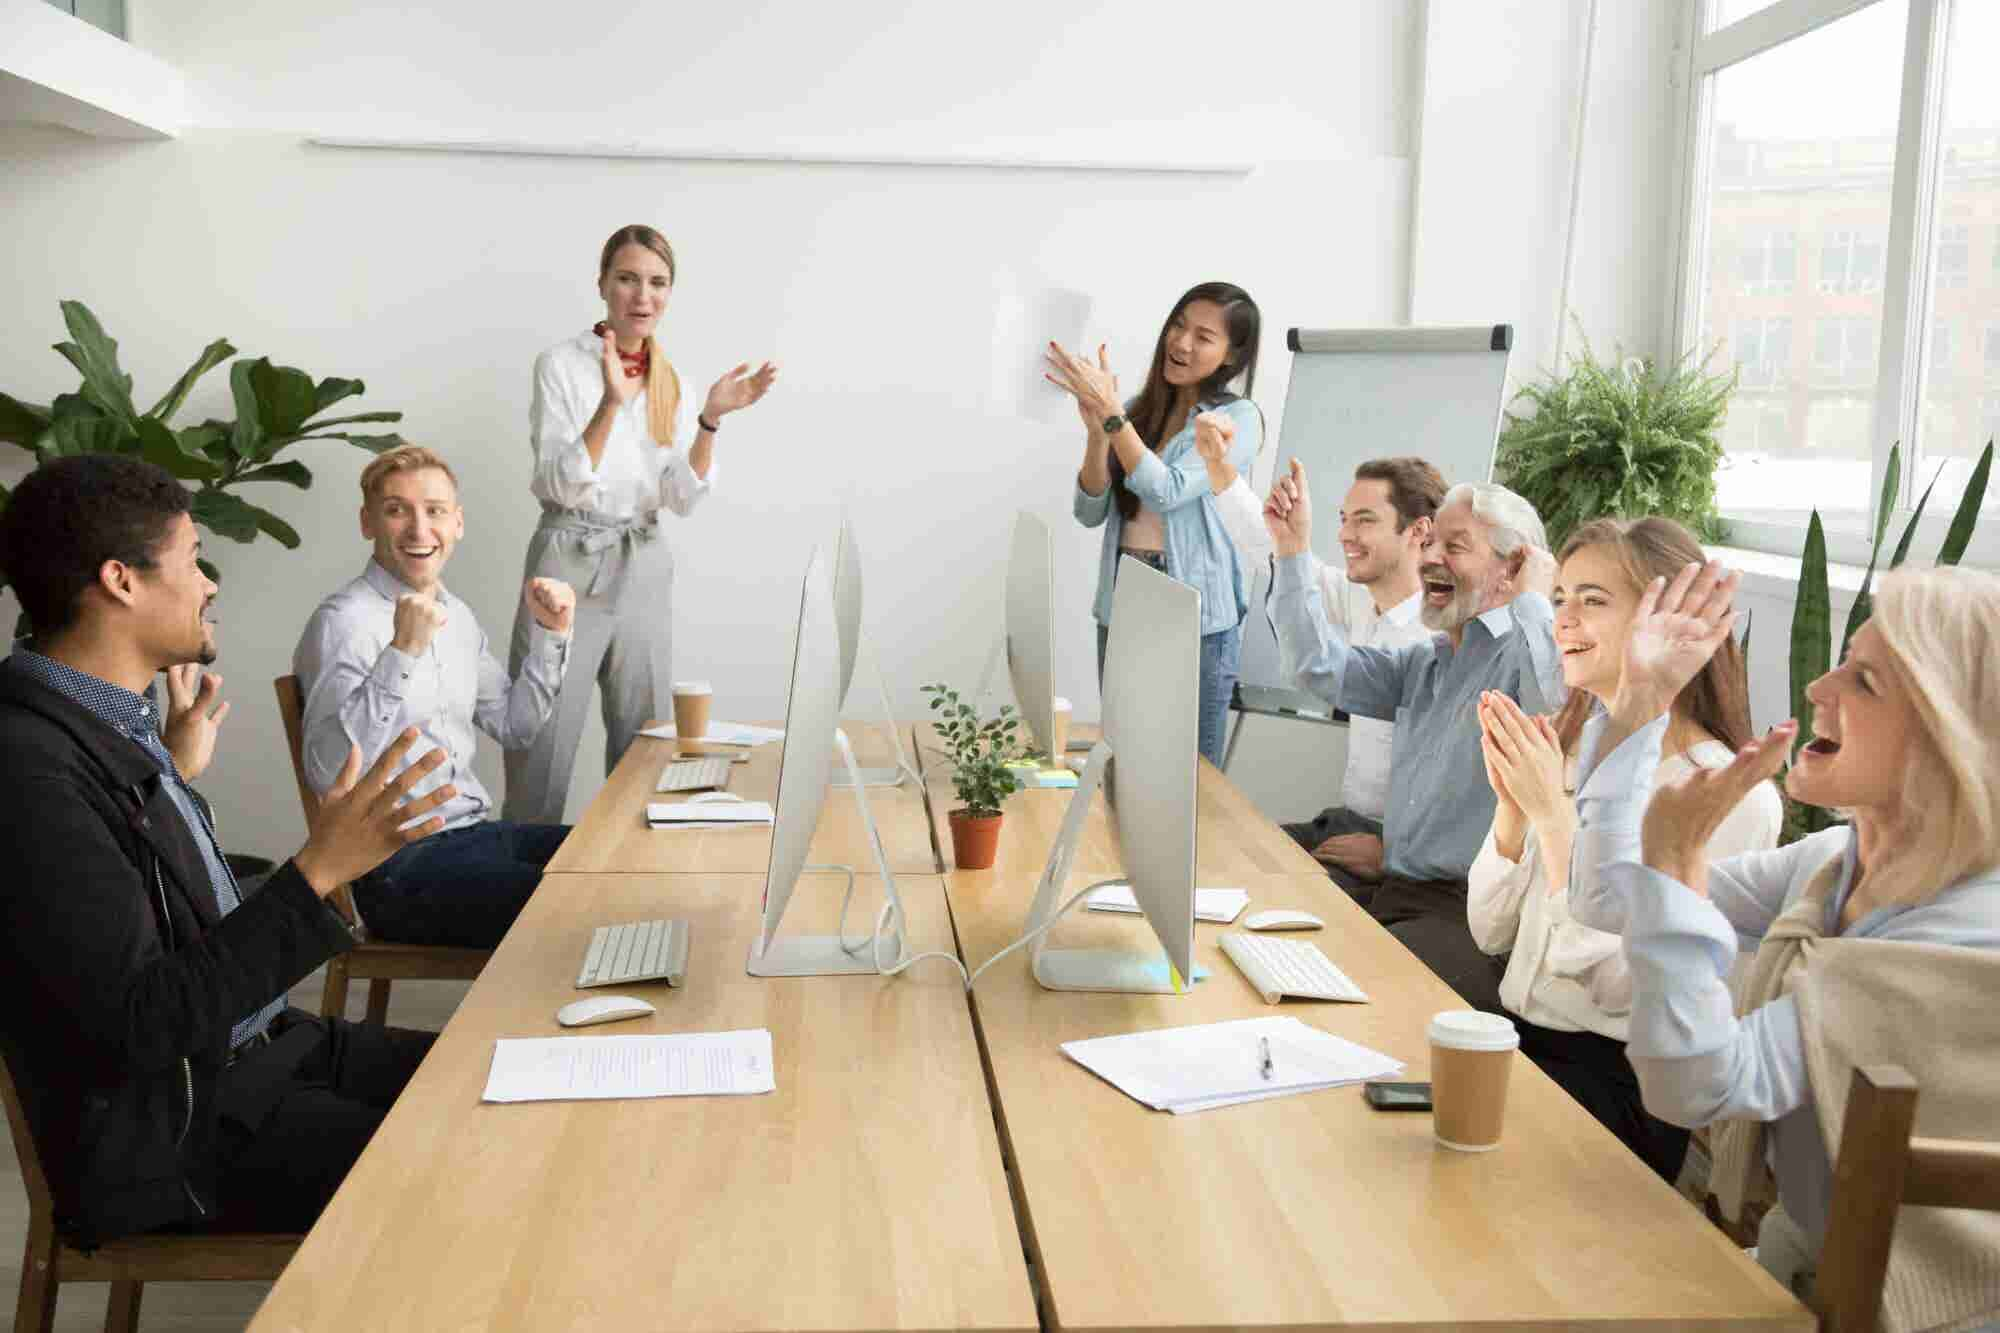 Are Your Company's Rising Stars Ready for the Big Promotion? Here's How to Make Sure They Are.